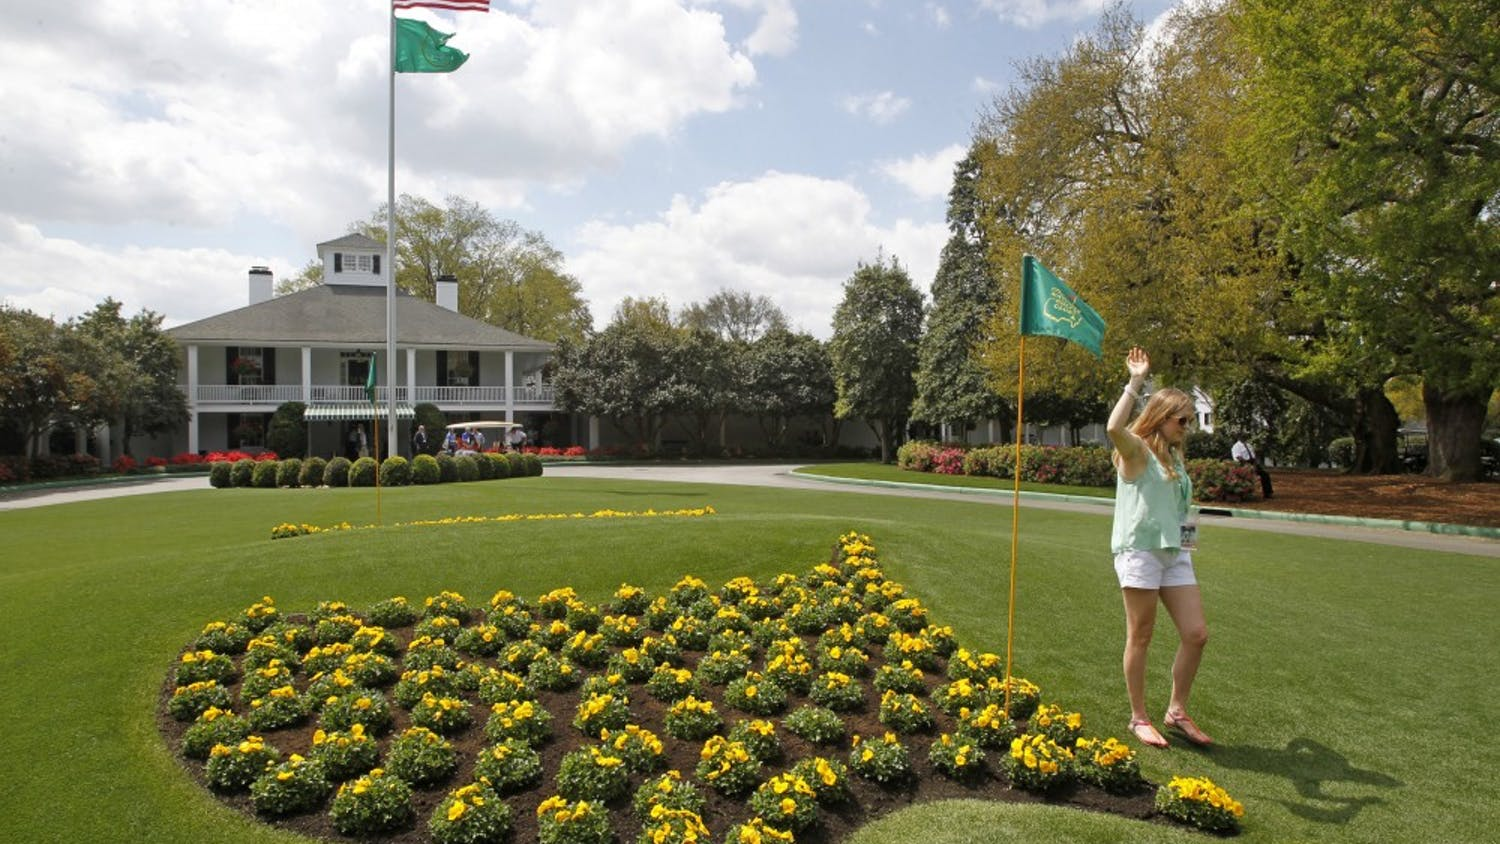 A patron poses for photos next to the Masters logo in flowers at Founders Circle in front of the Augusta National clubhouse in Augusta, Georgia, during a practice round for The Masters, Monday, April 8, 2013. (Gerry Melendez/The State/MCT)